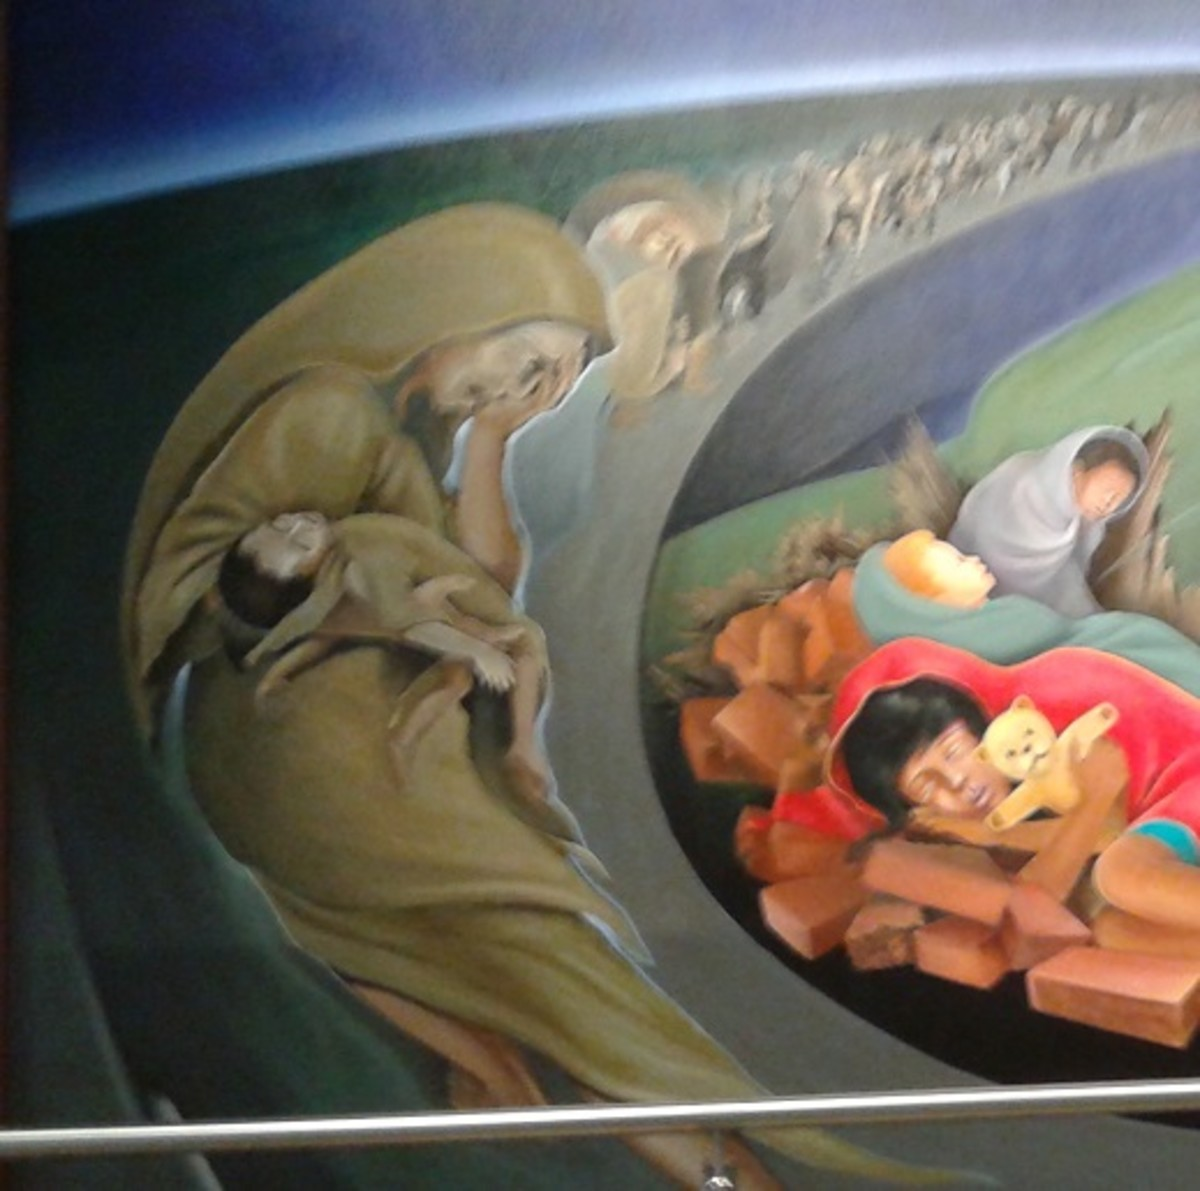 Another portion of the Death Mural on depicts ghostly gassed mothers carrying dead babies - Deliberate depopulation by the New World Order or the La Llorona motif?